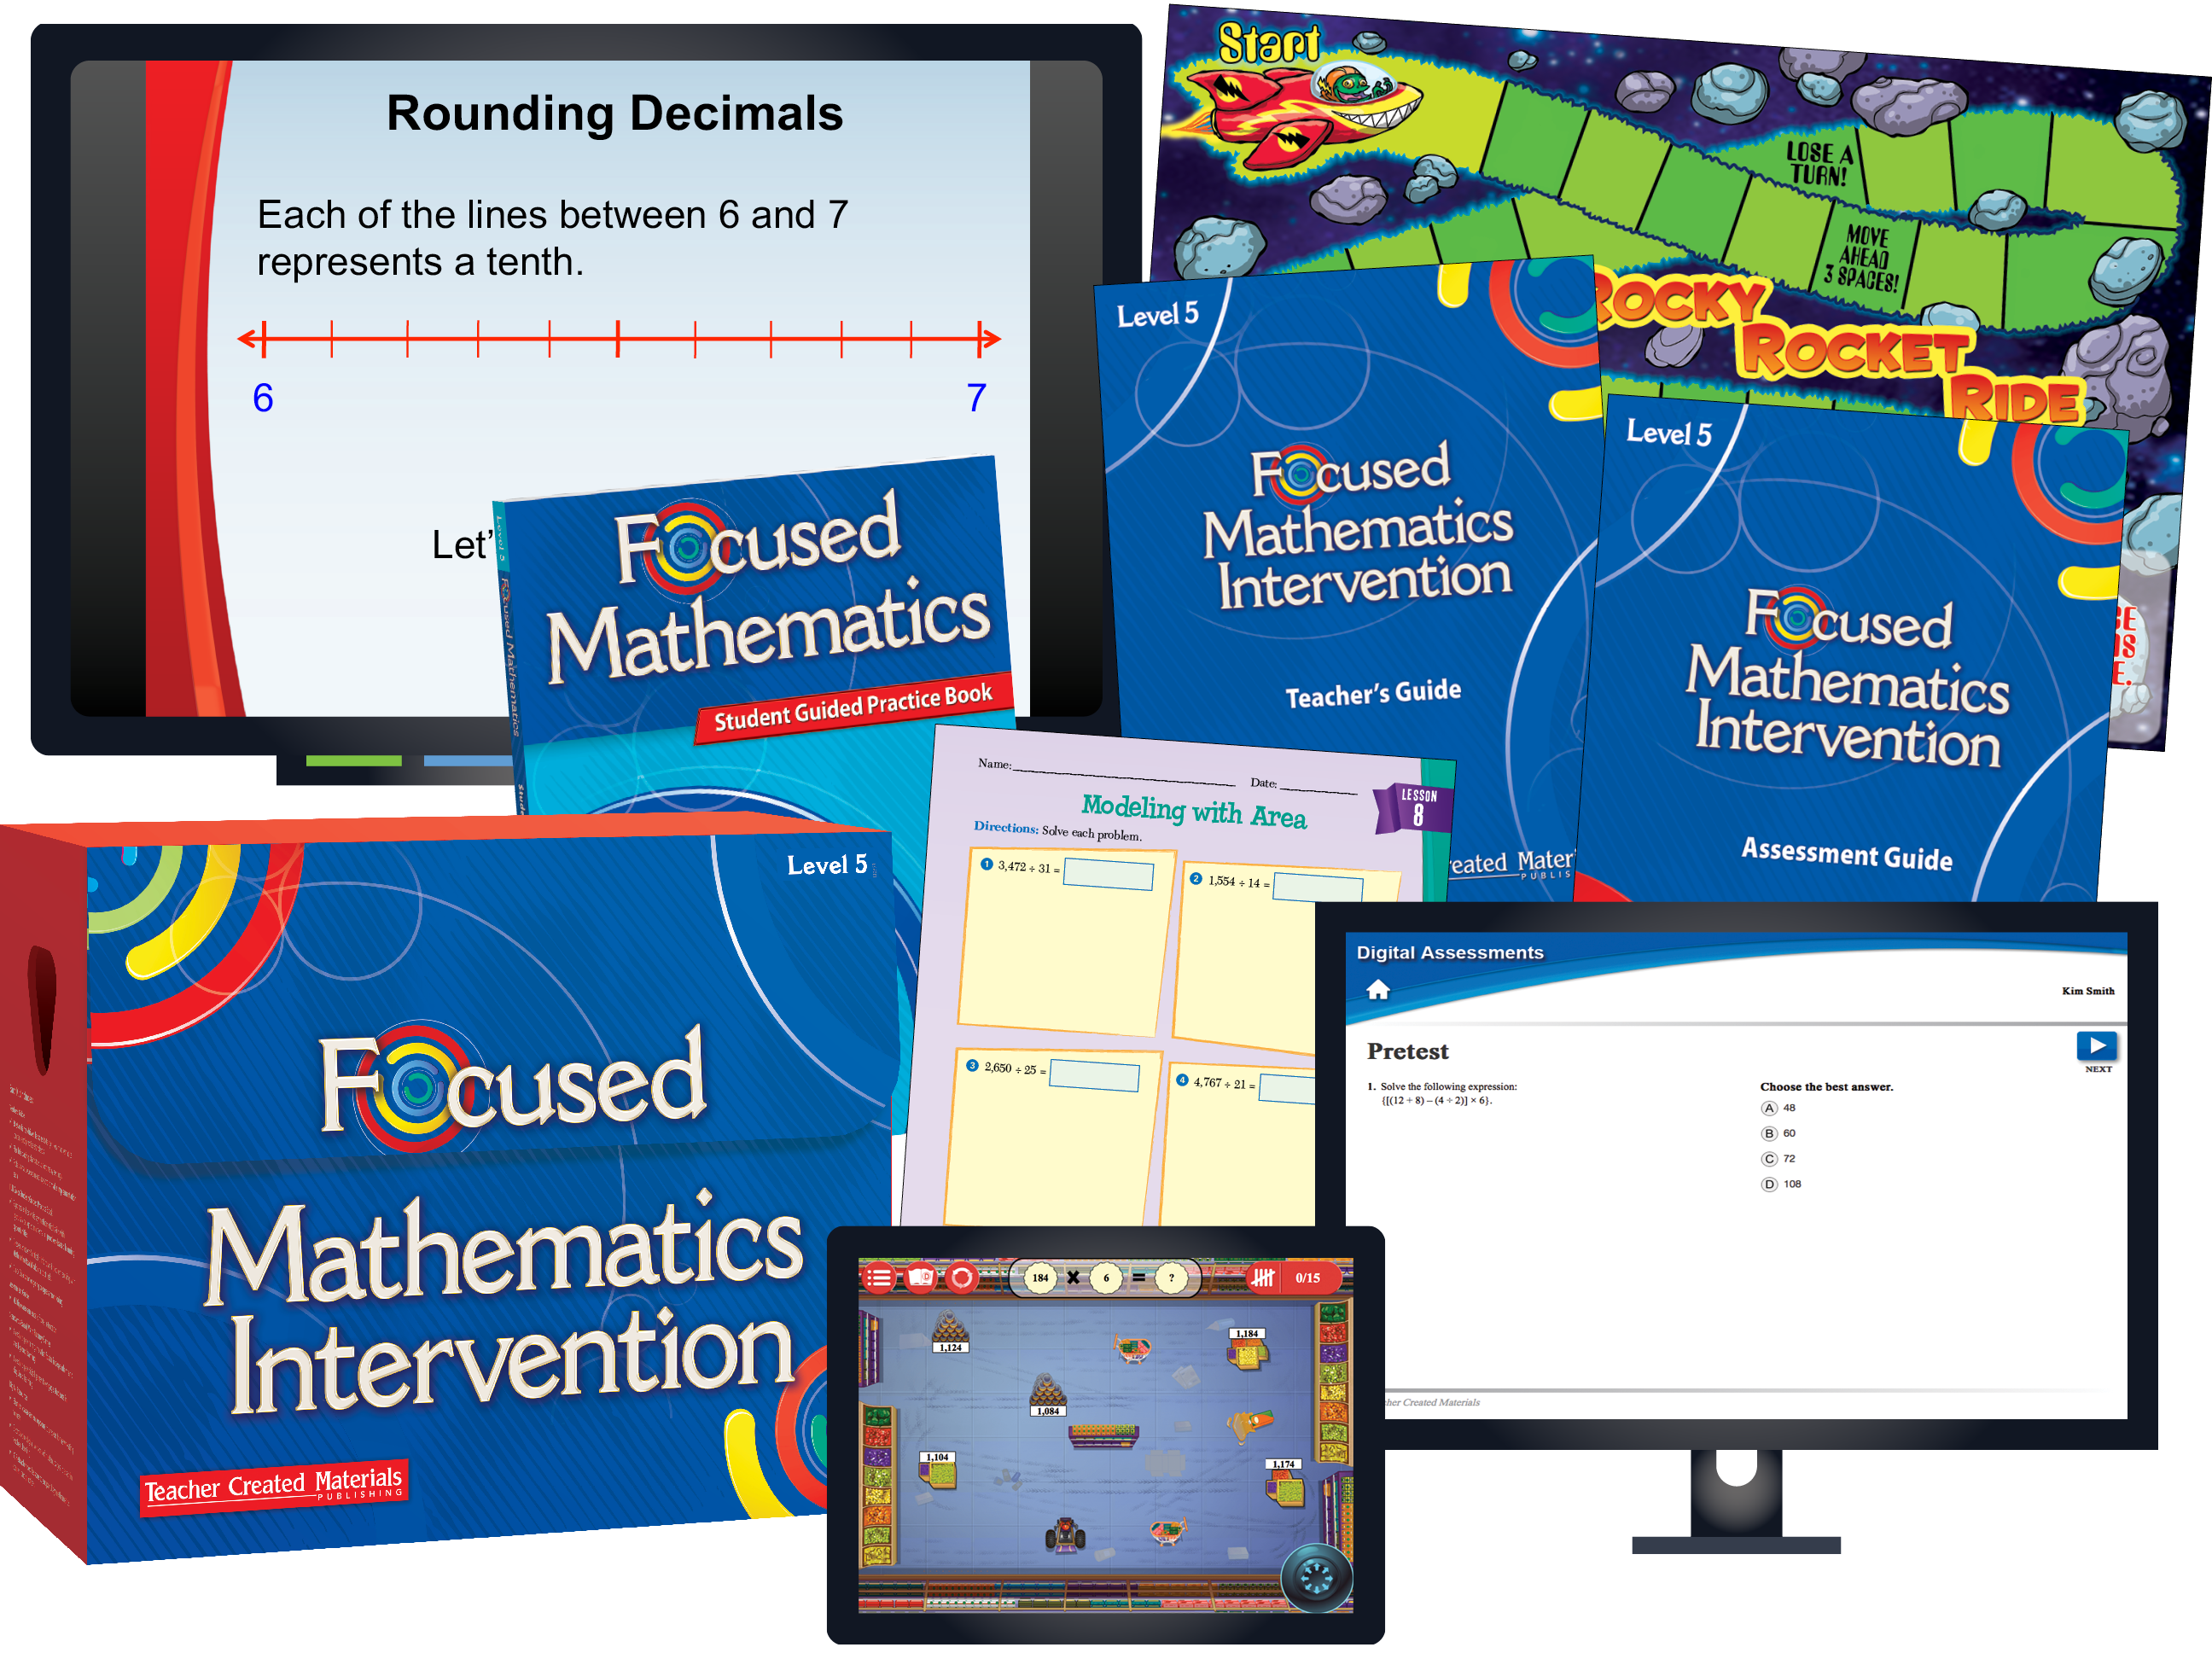 Focused Mathematics Intervention: Level 5 Kit